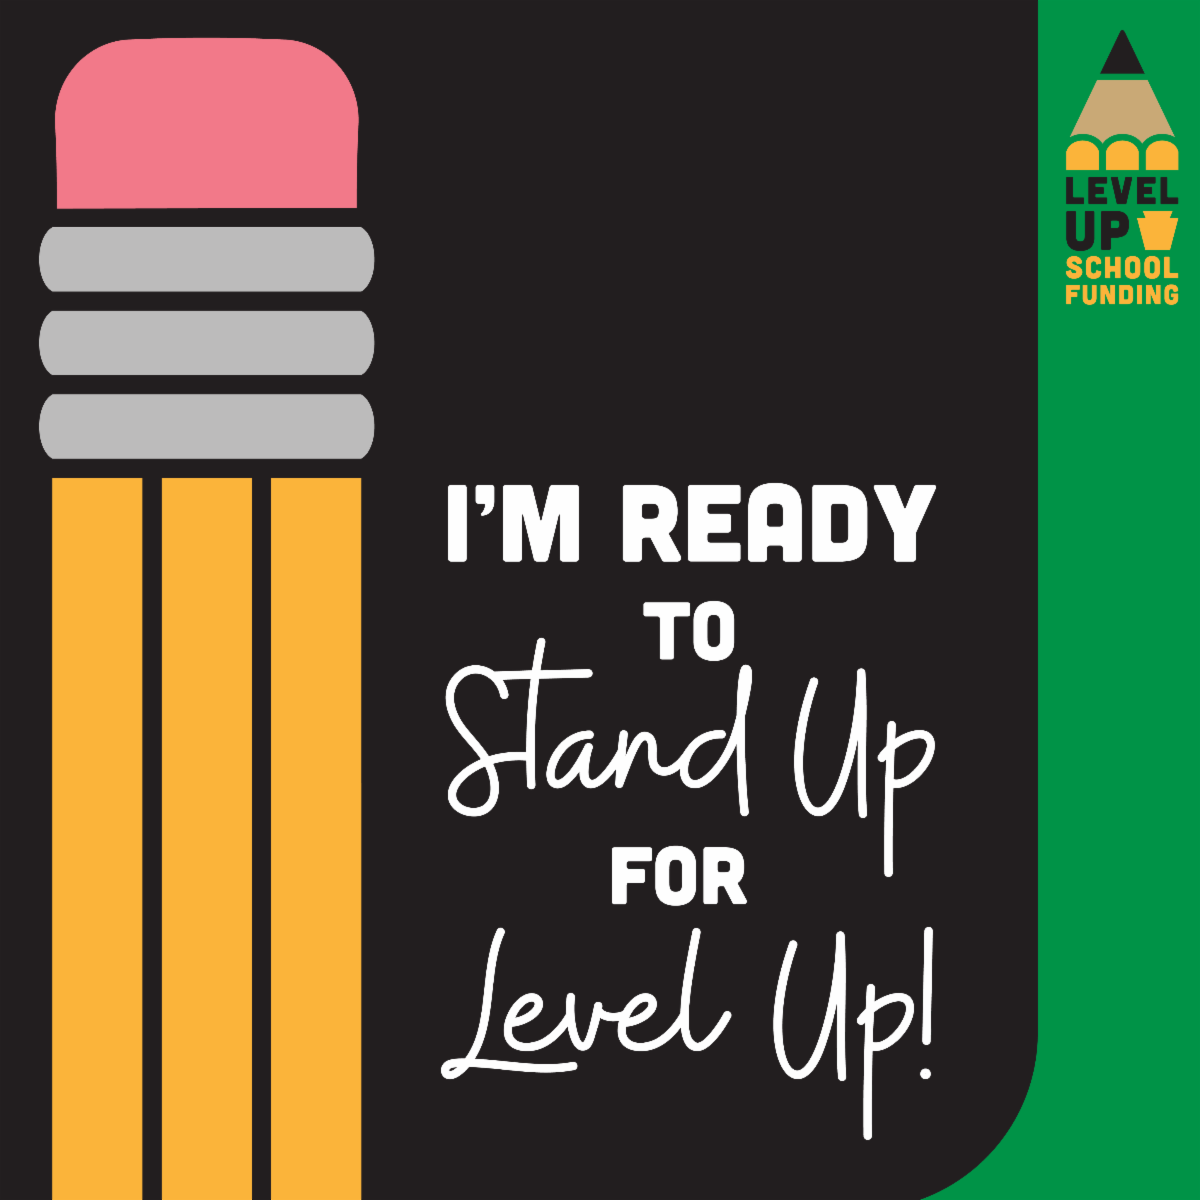 I'm ready to stand up for Level Up